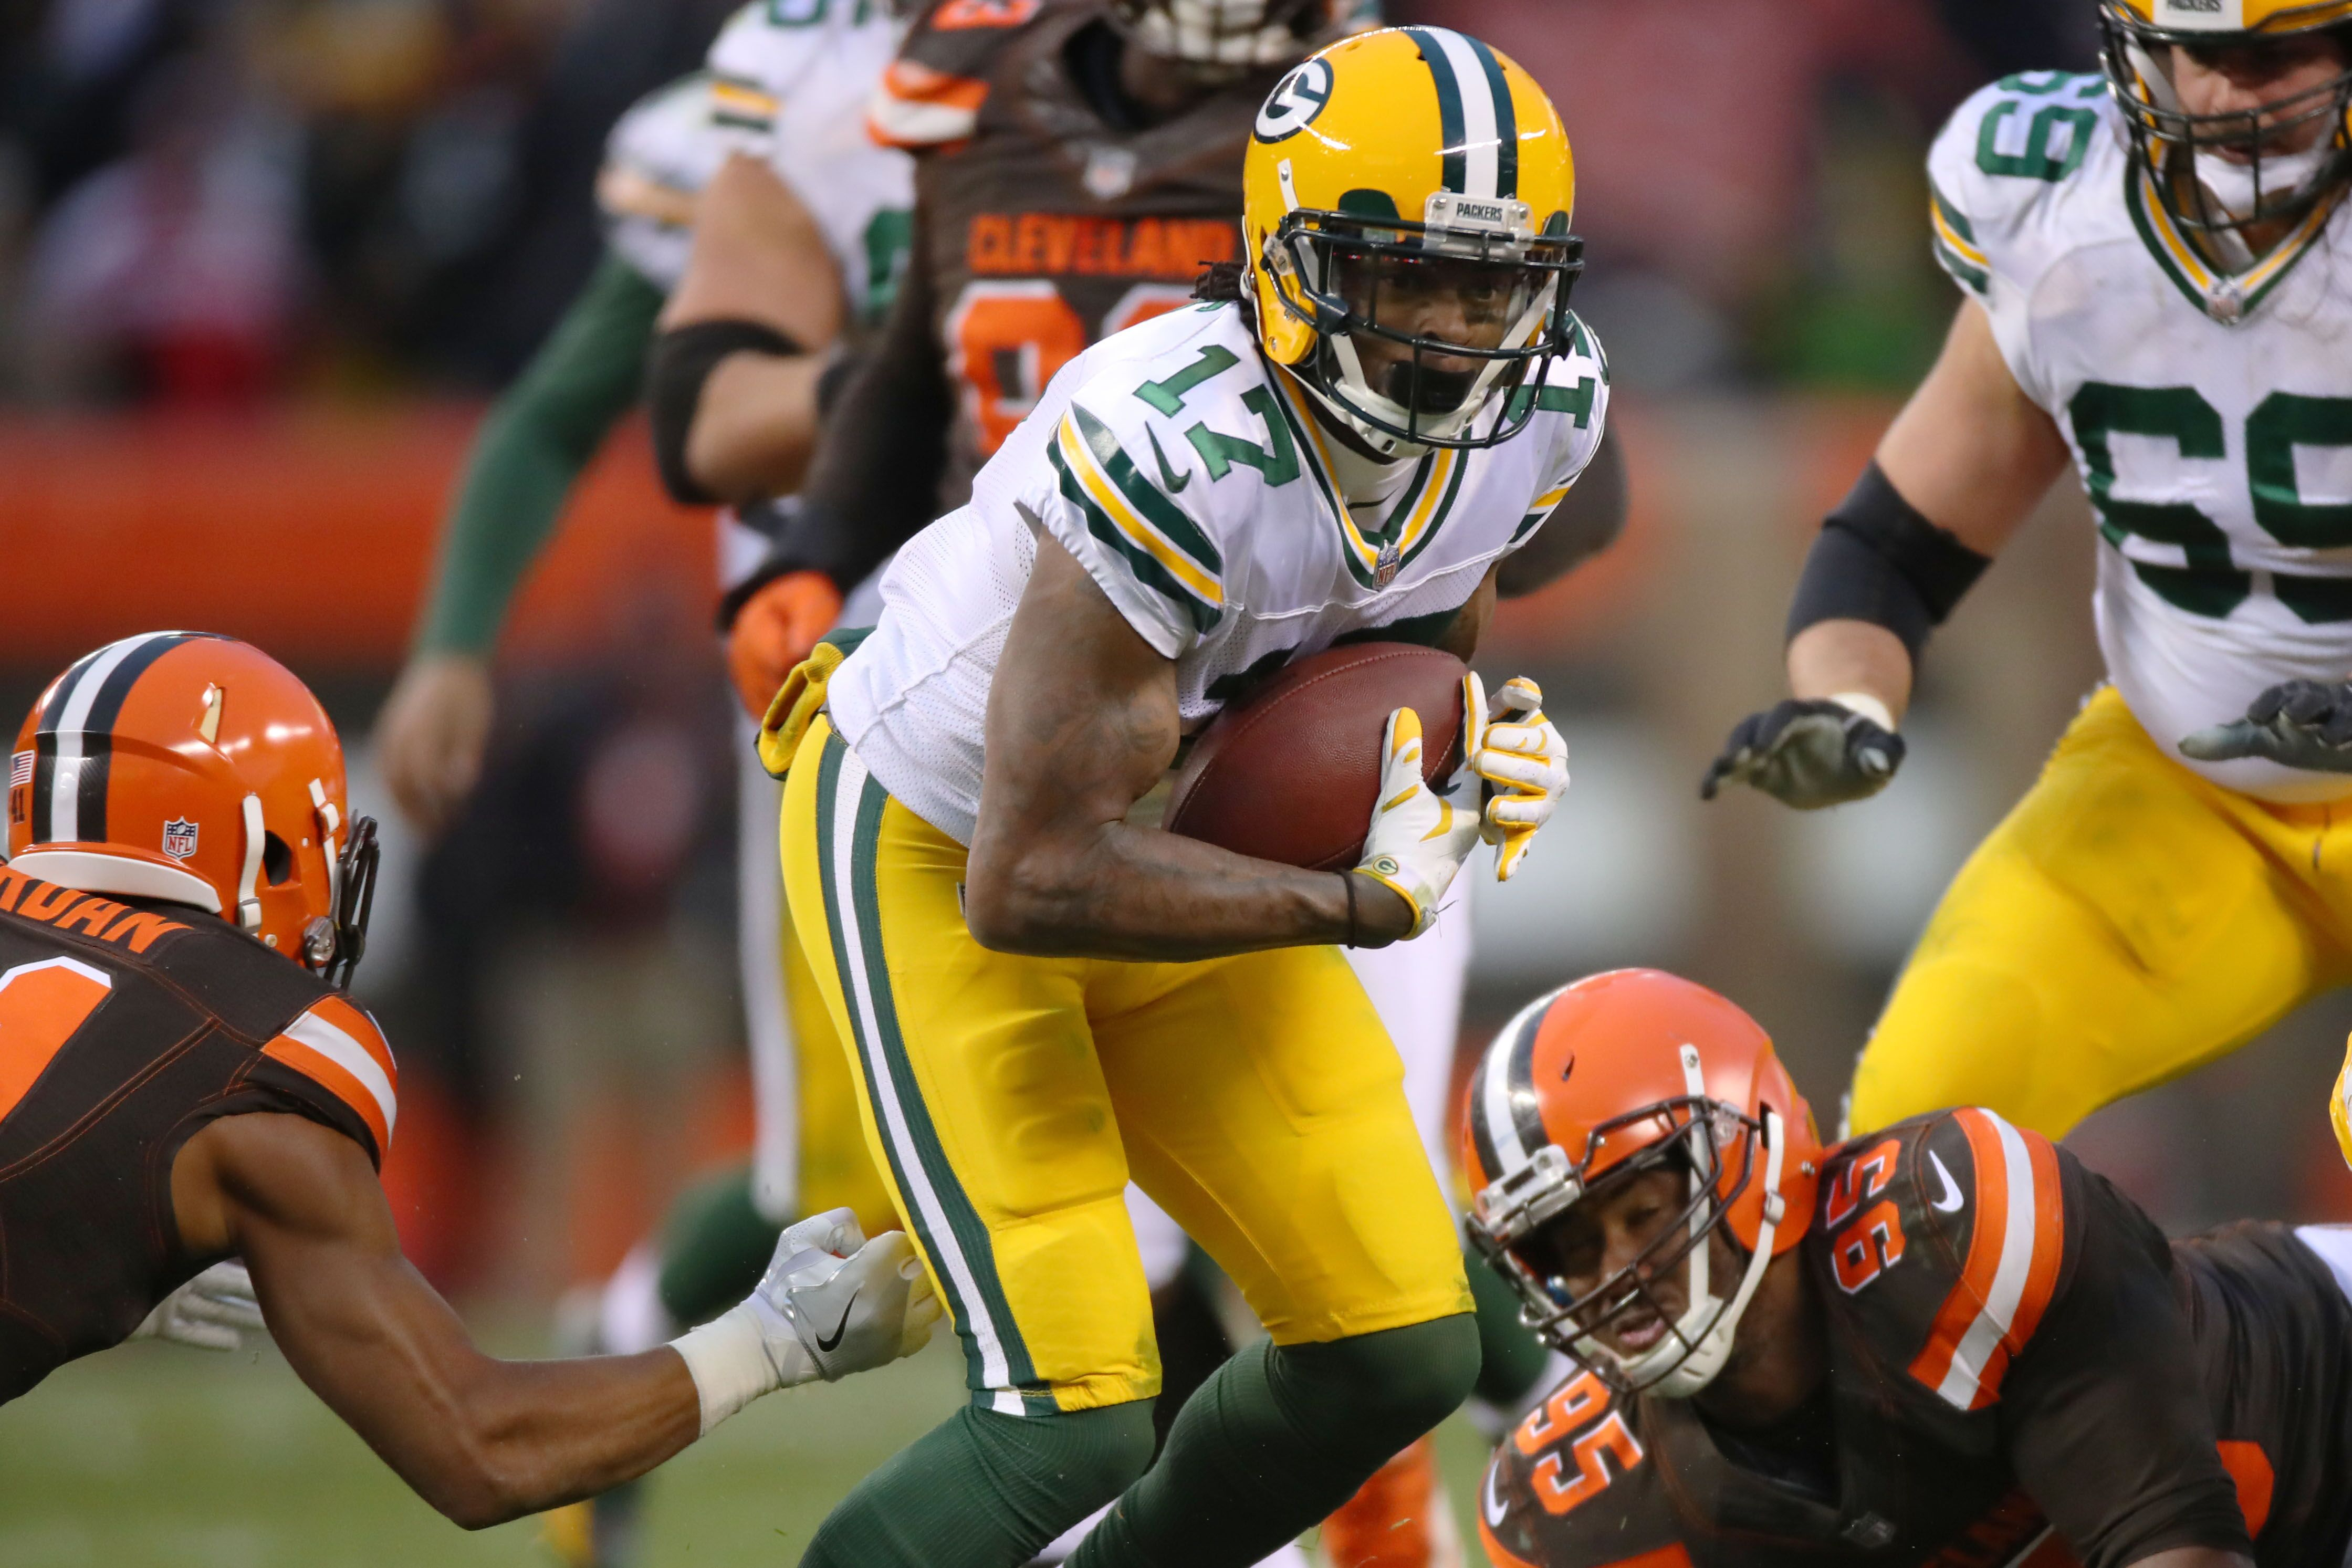 889692920-green-bay-packers-v-cleveland-browns.jpg